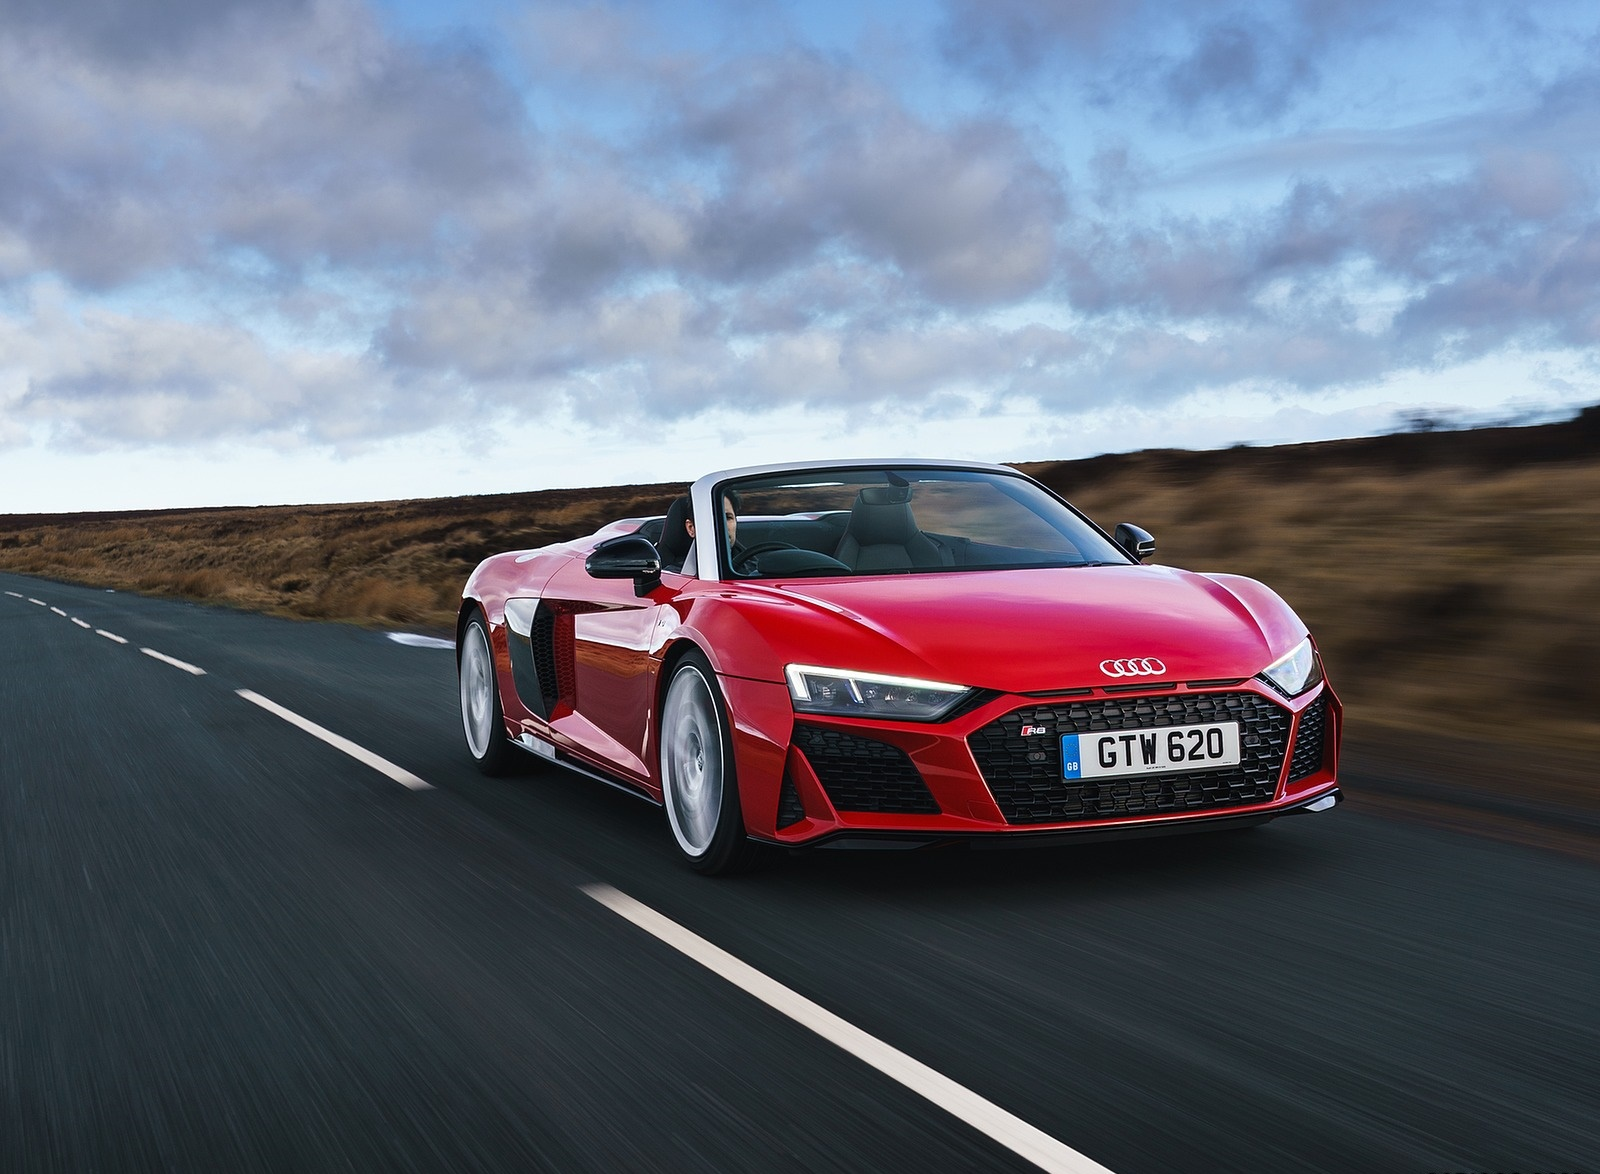 2019 Audi R8 V10 Spyder Performance quattro (UK-Spec) Front Three-Quarter Wallpapers (4)